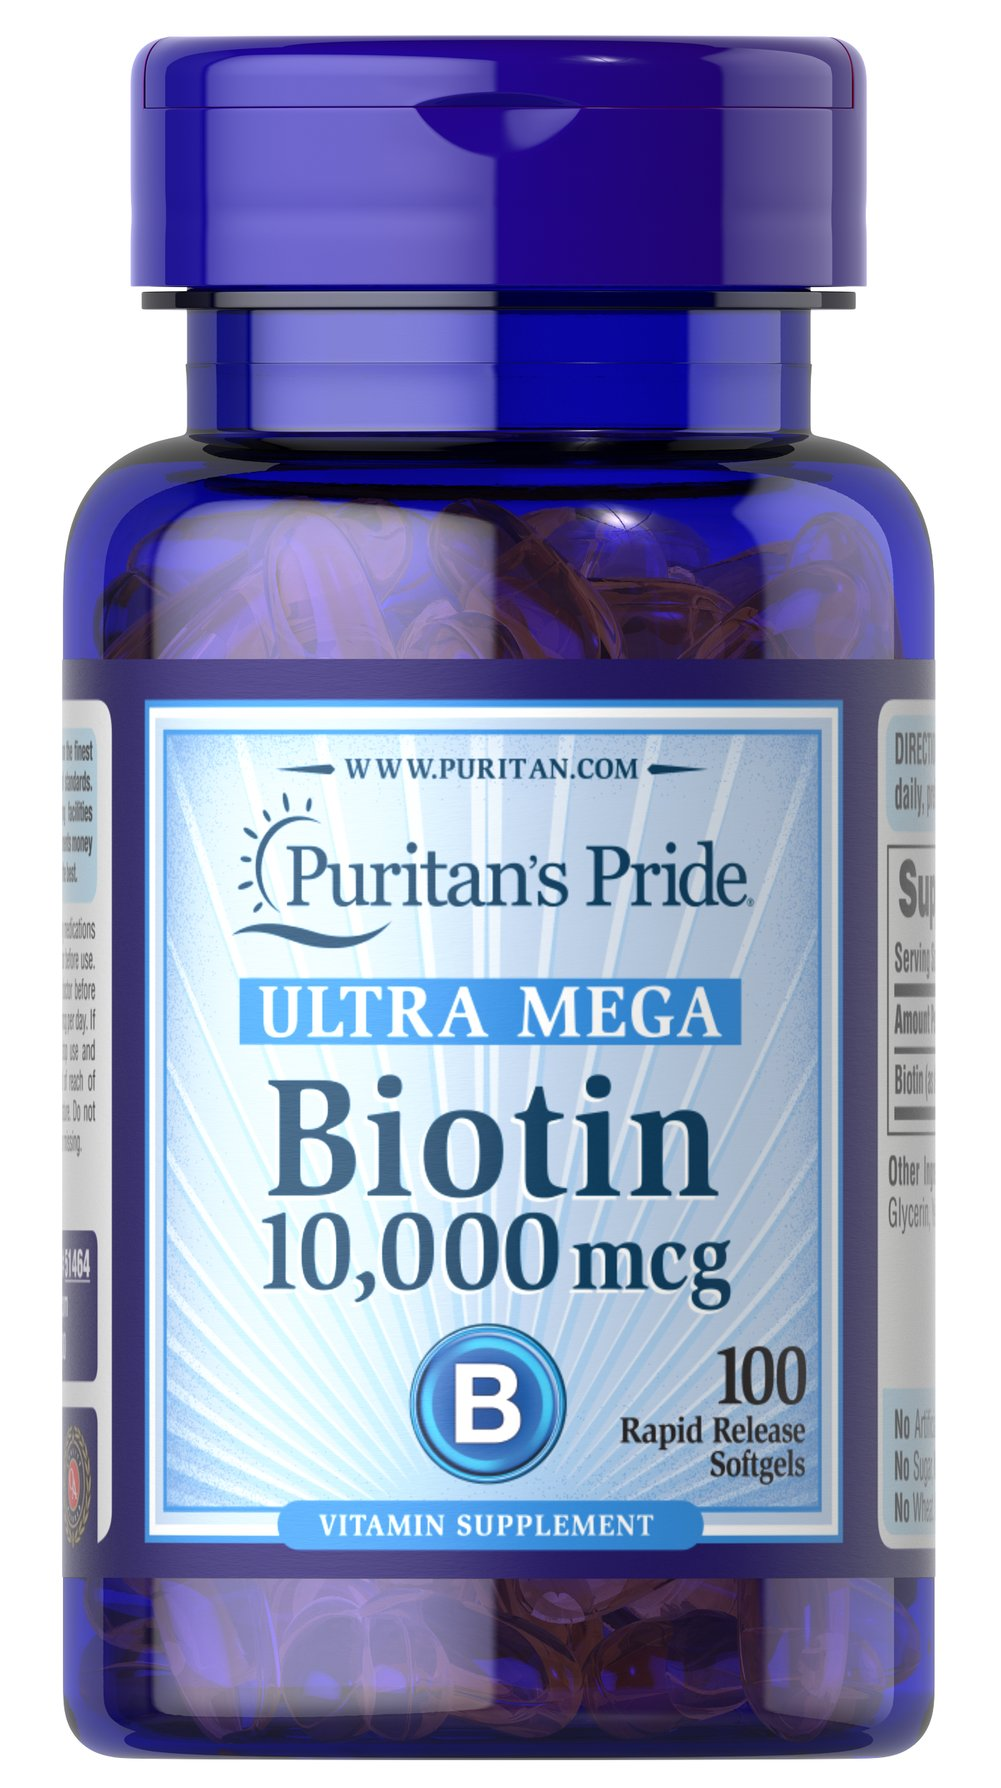 Biotin 10,000 mcg <p>Helps promote skin, hair and nail health.**</p> <p>Assists protein and fat metabolism for energy use.**</p> <p>Rapid release softgels.</p> <p>Biotin helps promote skin, hair and nail health so you can look and feel your best.** Just one Ultra Mega Biotin softgel provides 10,000mcg of Biotin, also known to assist in protein and fat metabolism for energy use.** Includes 50 rapid release softgels.</p>  100 Softgels 10000 mcg $22.5